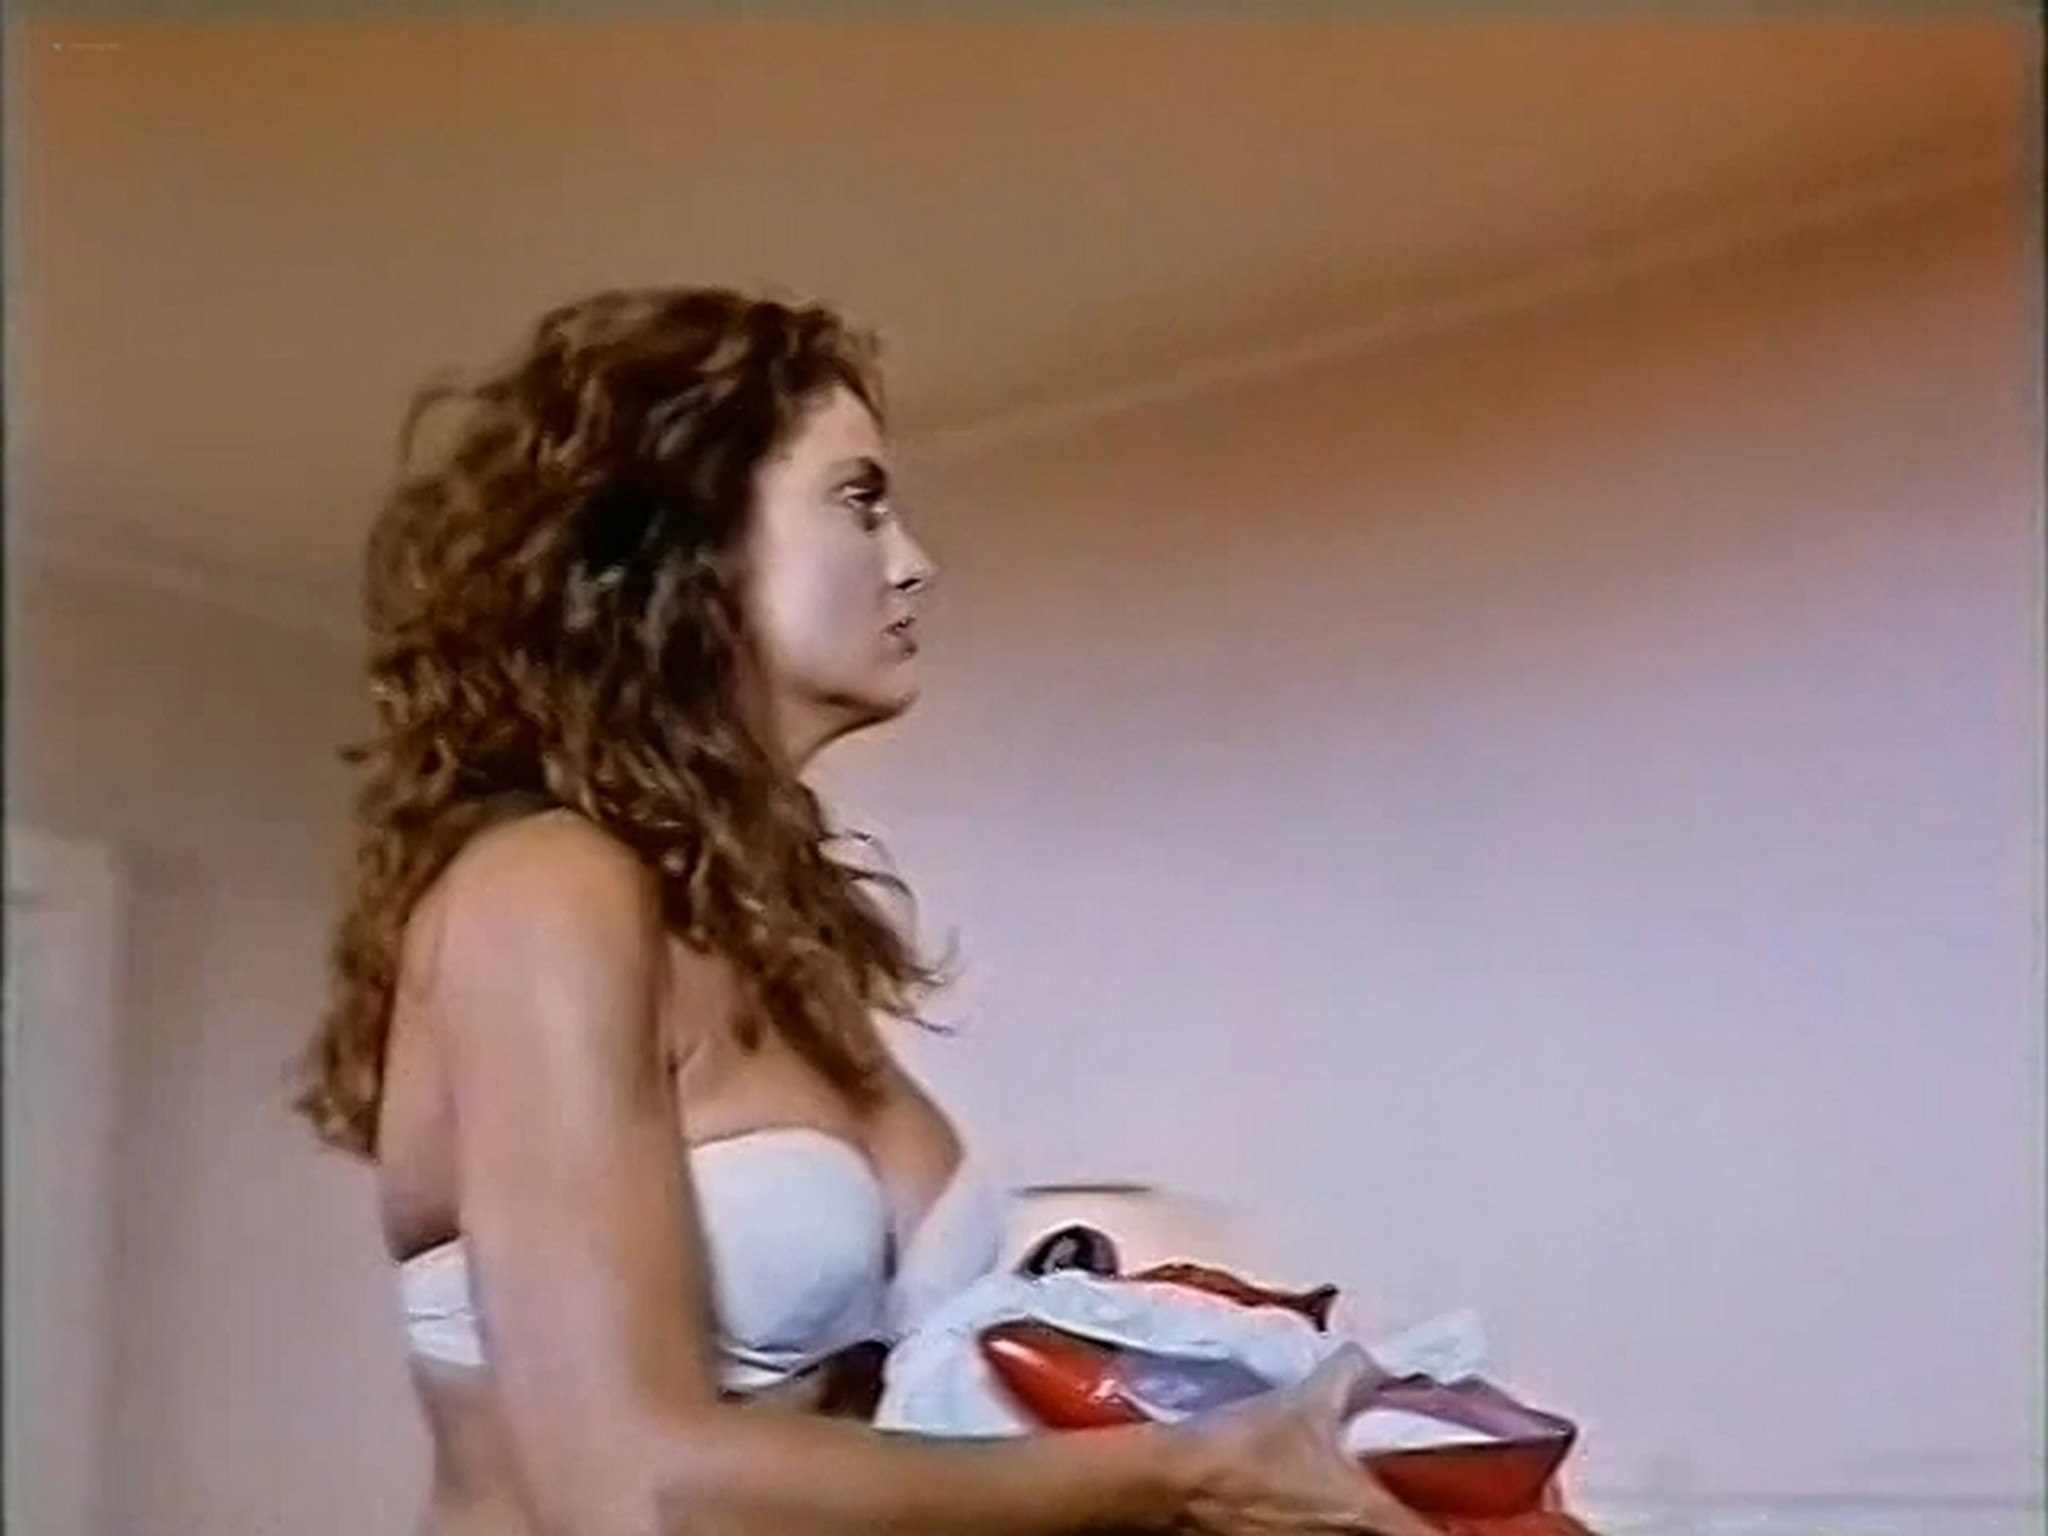 Tracy Scoggins nude in the shower The Gumshoe Kid 1990 DVDRip 2